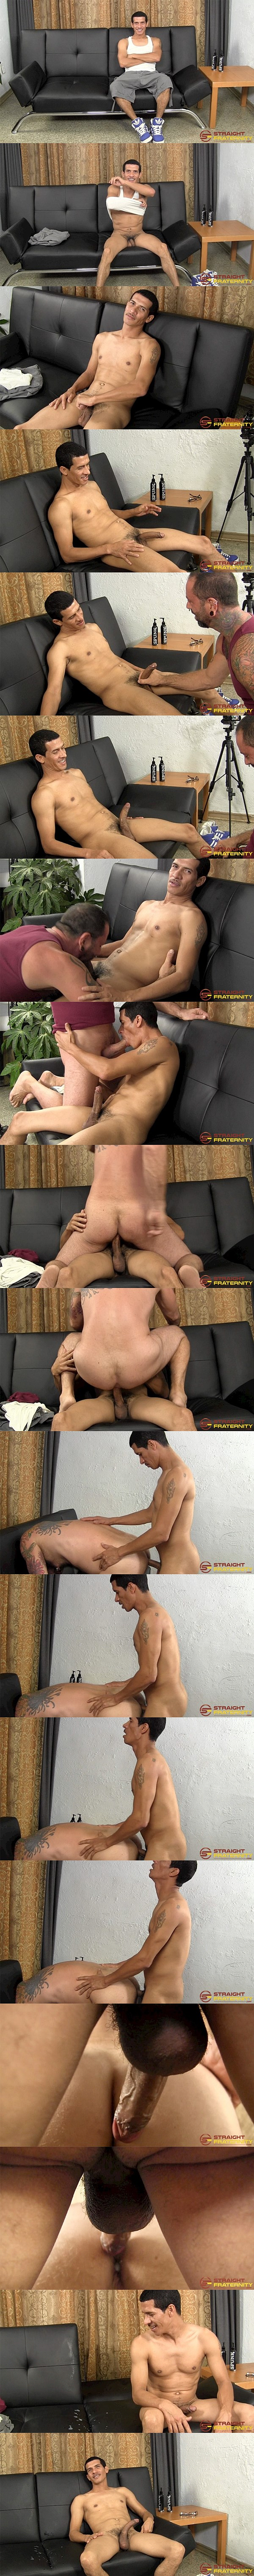 Straightfraternity - big-cocked Puerto Rican straight guy Parker barebacks inked daddy Franco Dax before he fucks the cum out of Franco and creampies him 02